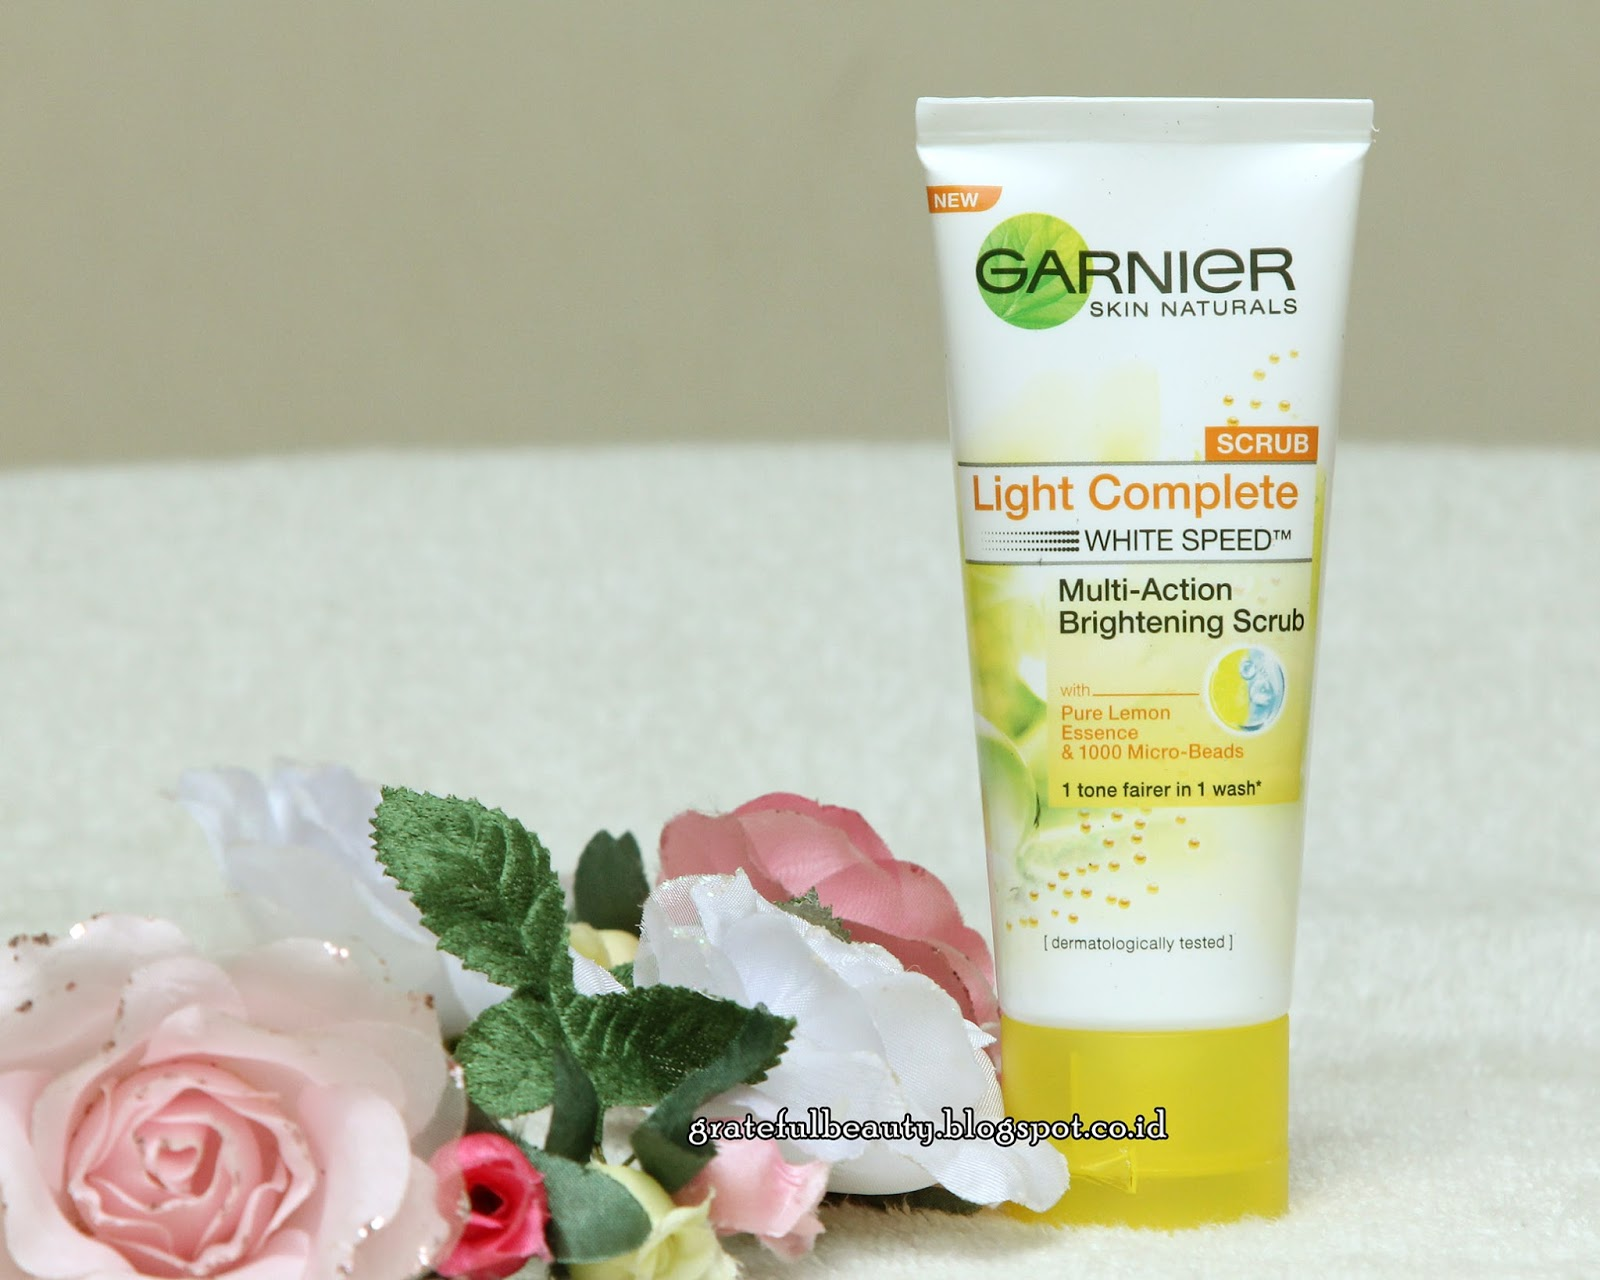 Review Garnier Light Complete White Speed Multi Action Brightening Paket Deskripsi Produk Scrub Wajah Yang Lembut Dan Mudah Dibilas Dengan 1000 Micro Beads Sari Lemon Untuk Membersihkan Secara Menyeluruh 1